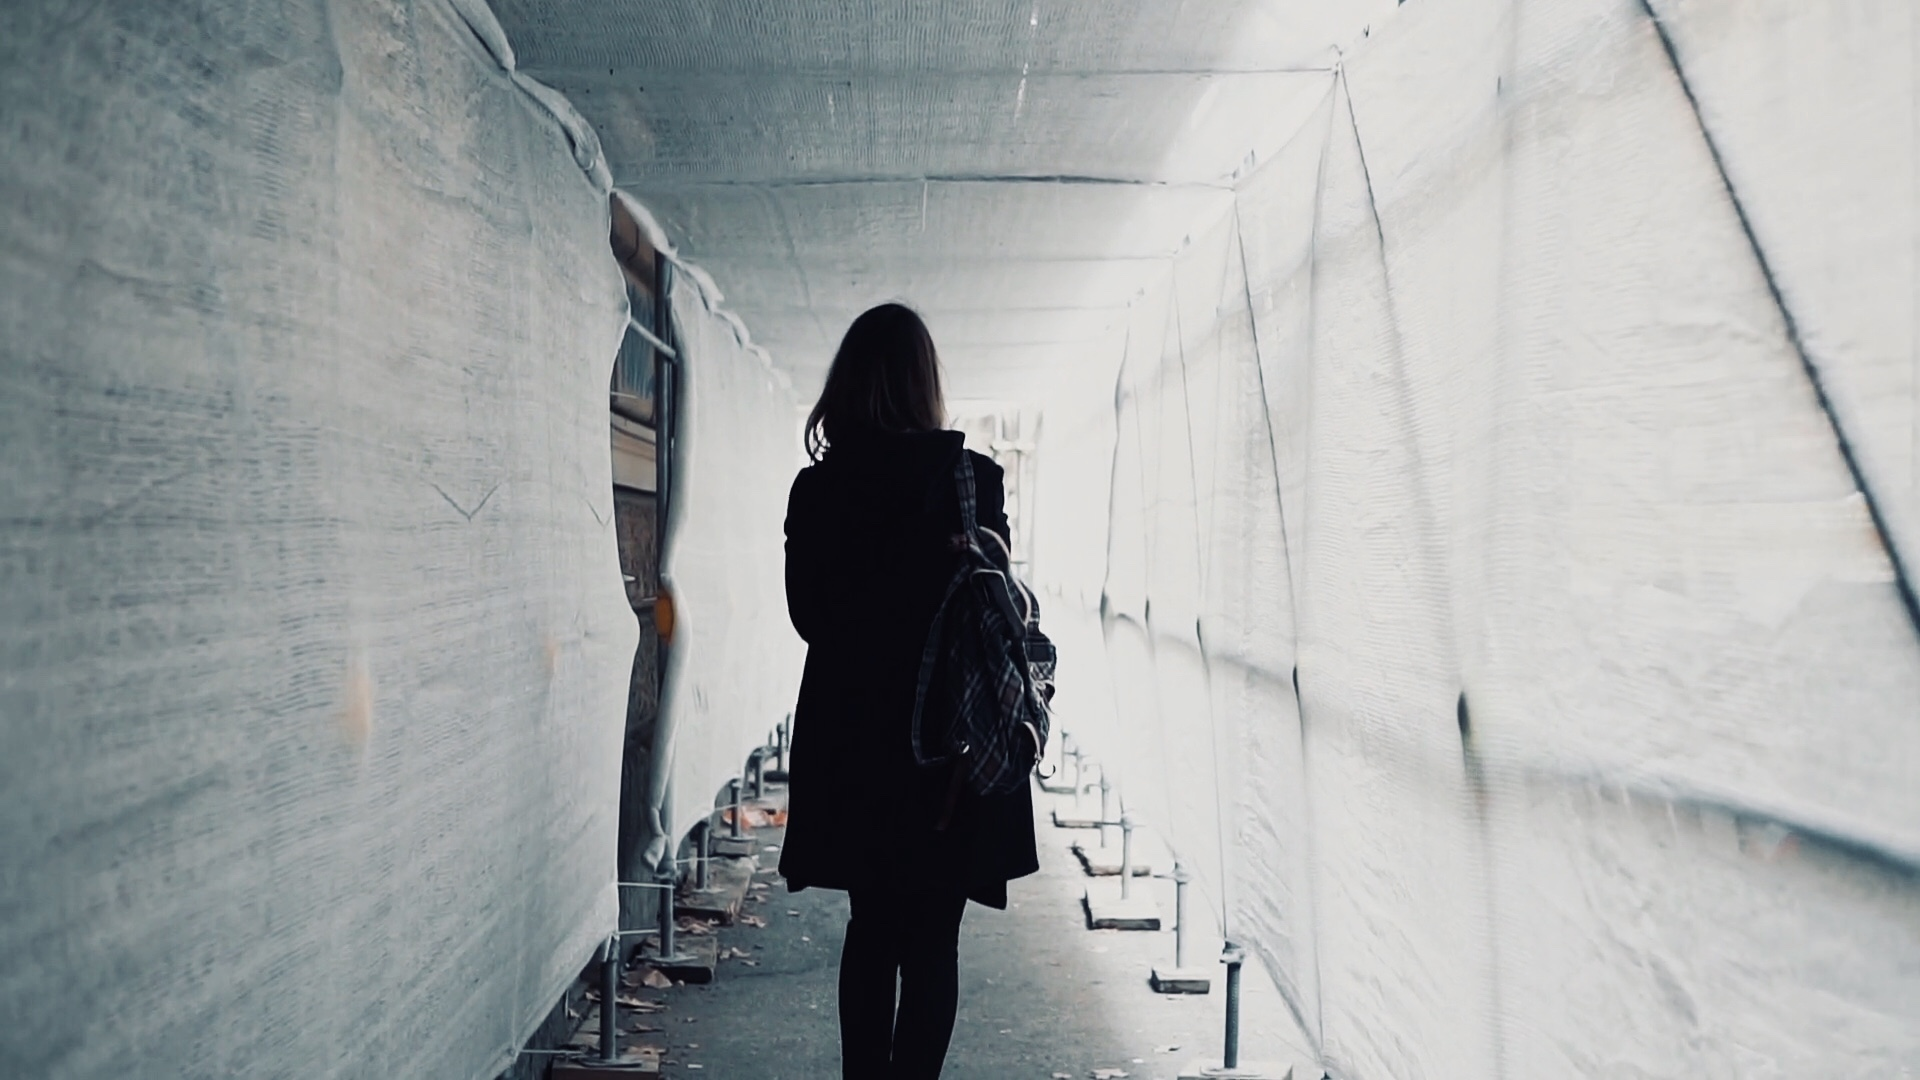 videoblocks-student-girl-walking-through-the-white-construction-corridor-back-view-of-young-woman-goes-to-work-across-the-building_rnllt3ldje_thumbnail-full08.jpg